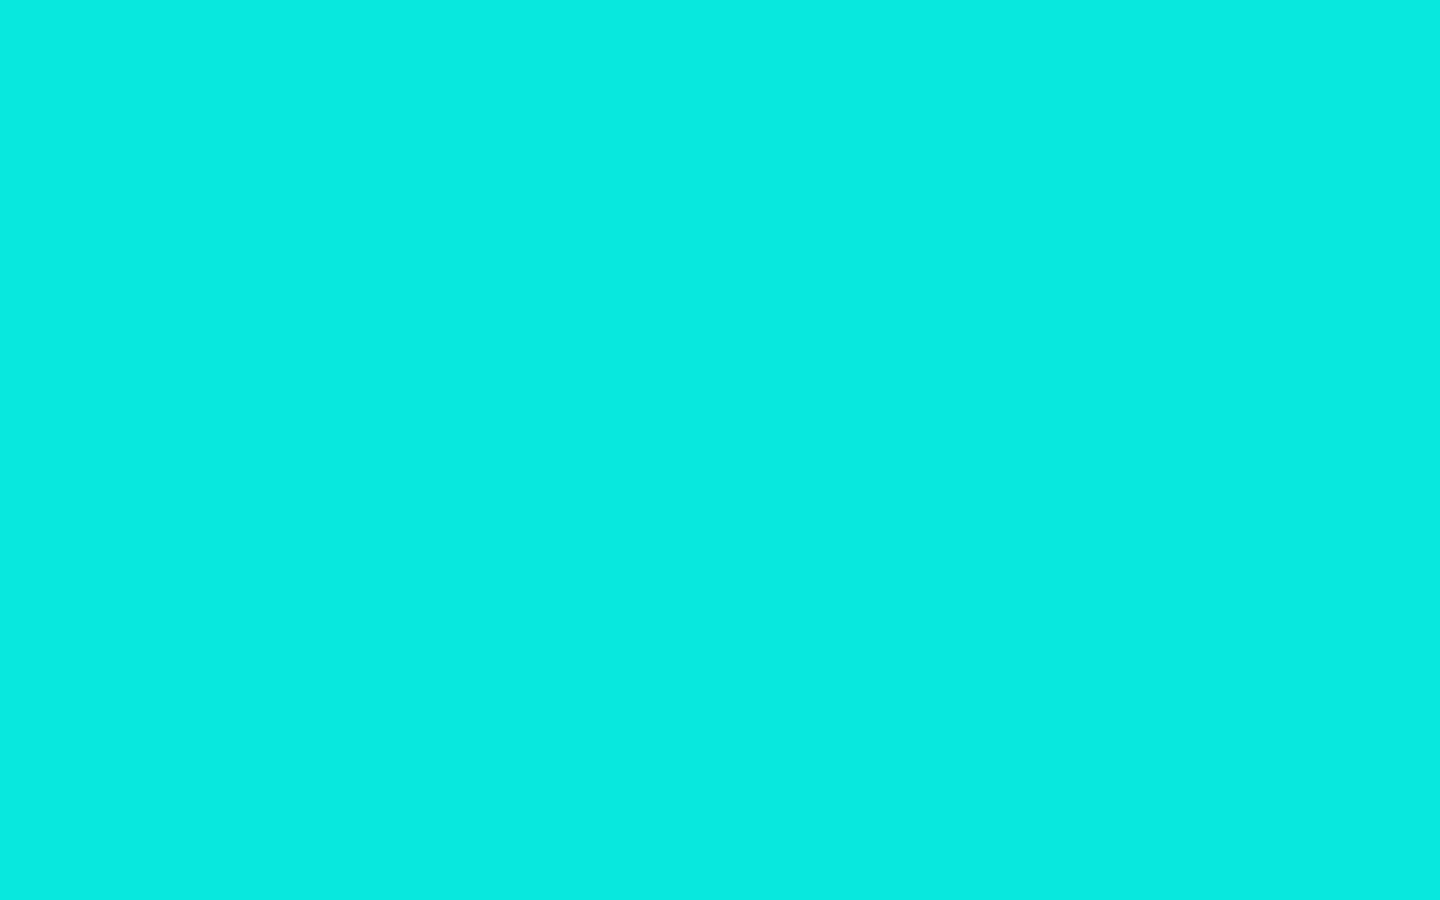 Bright Turquoise Color The Image Kid